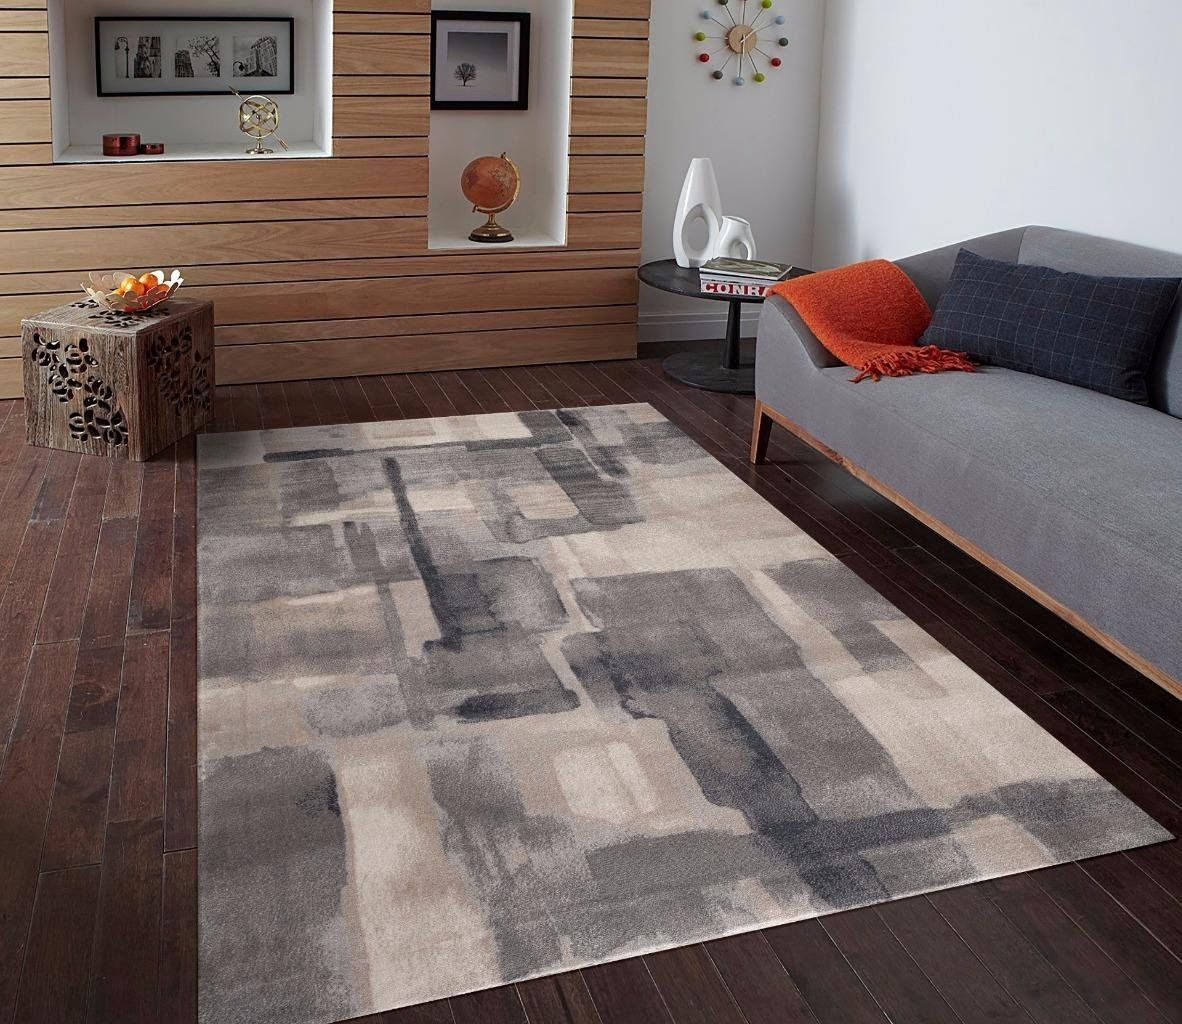 2428 Gray 2 0x3 0 Area Rug Modern Carpet Large New Final Call For This Special Rugs Runners Pads